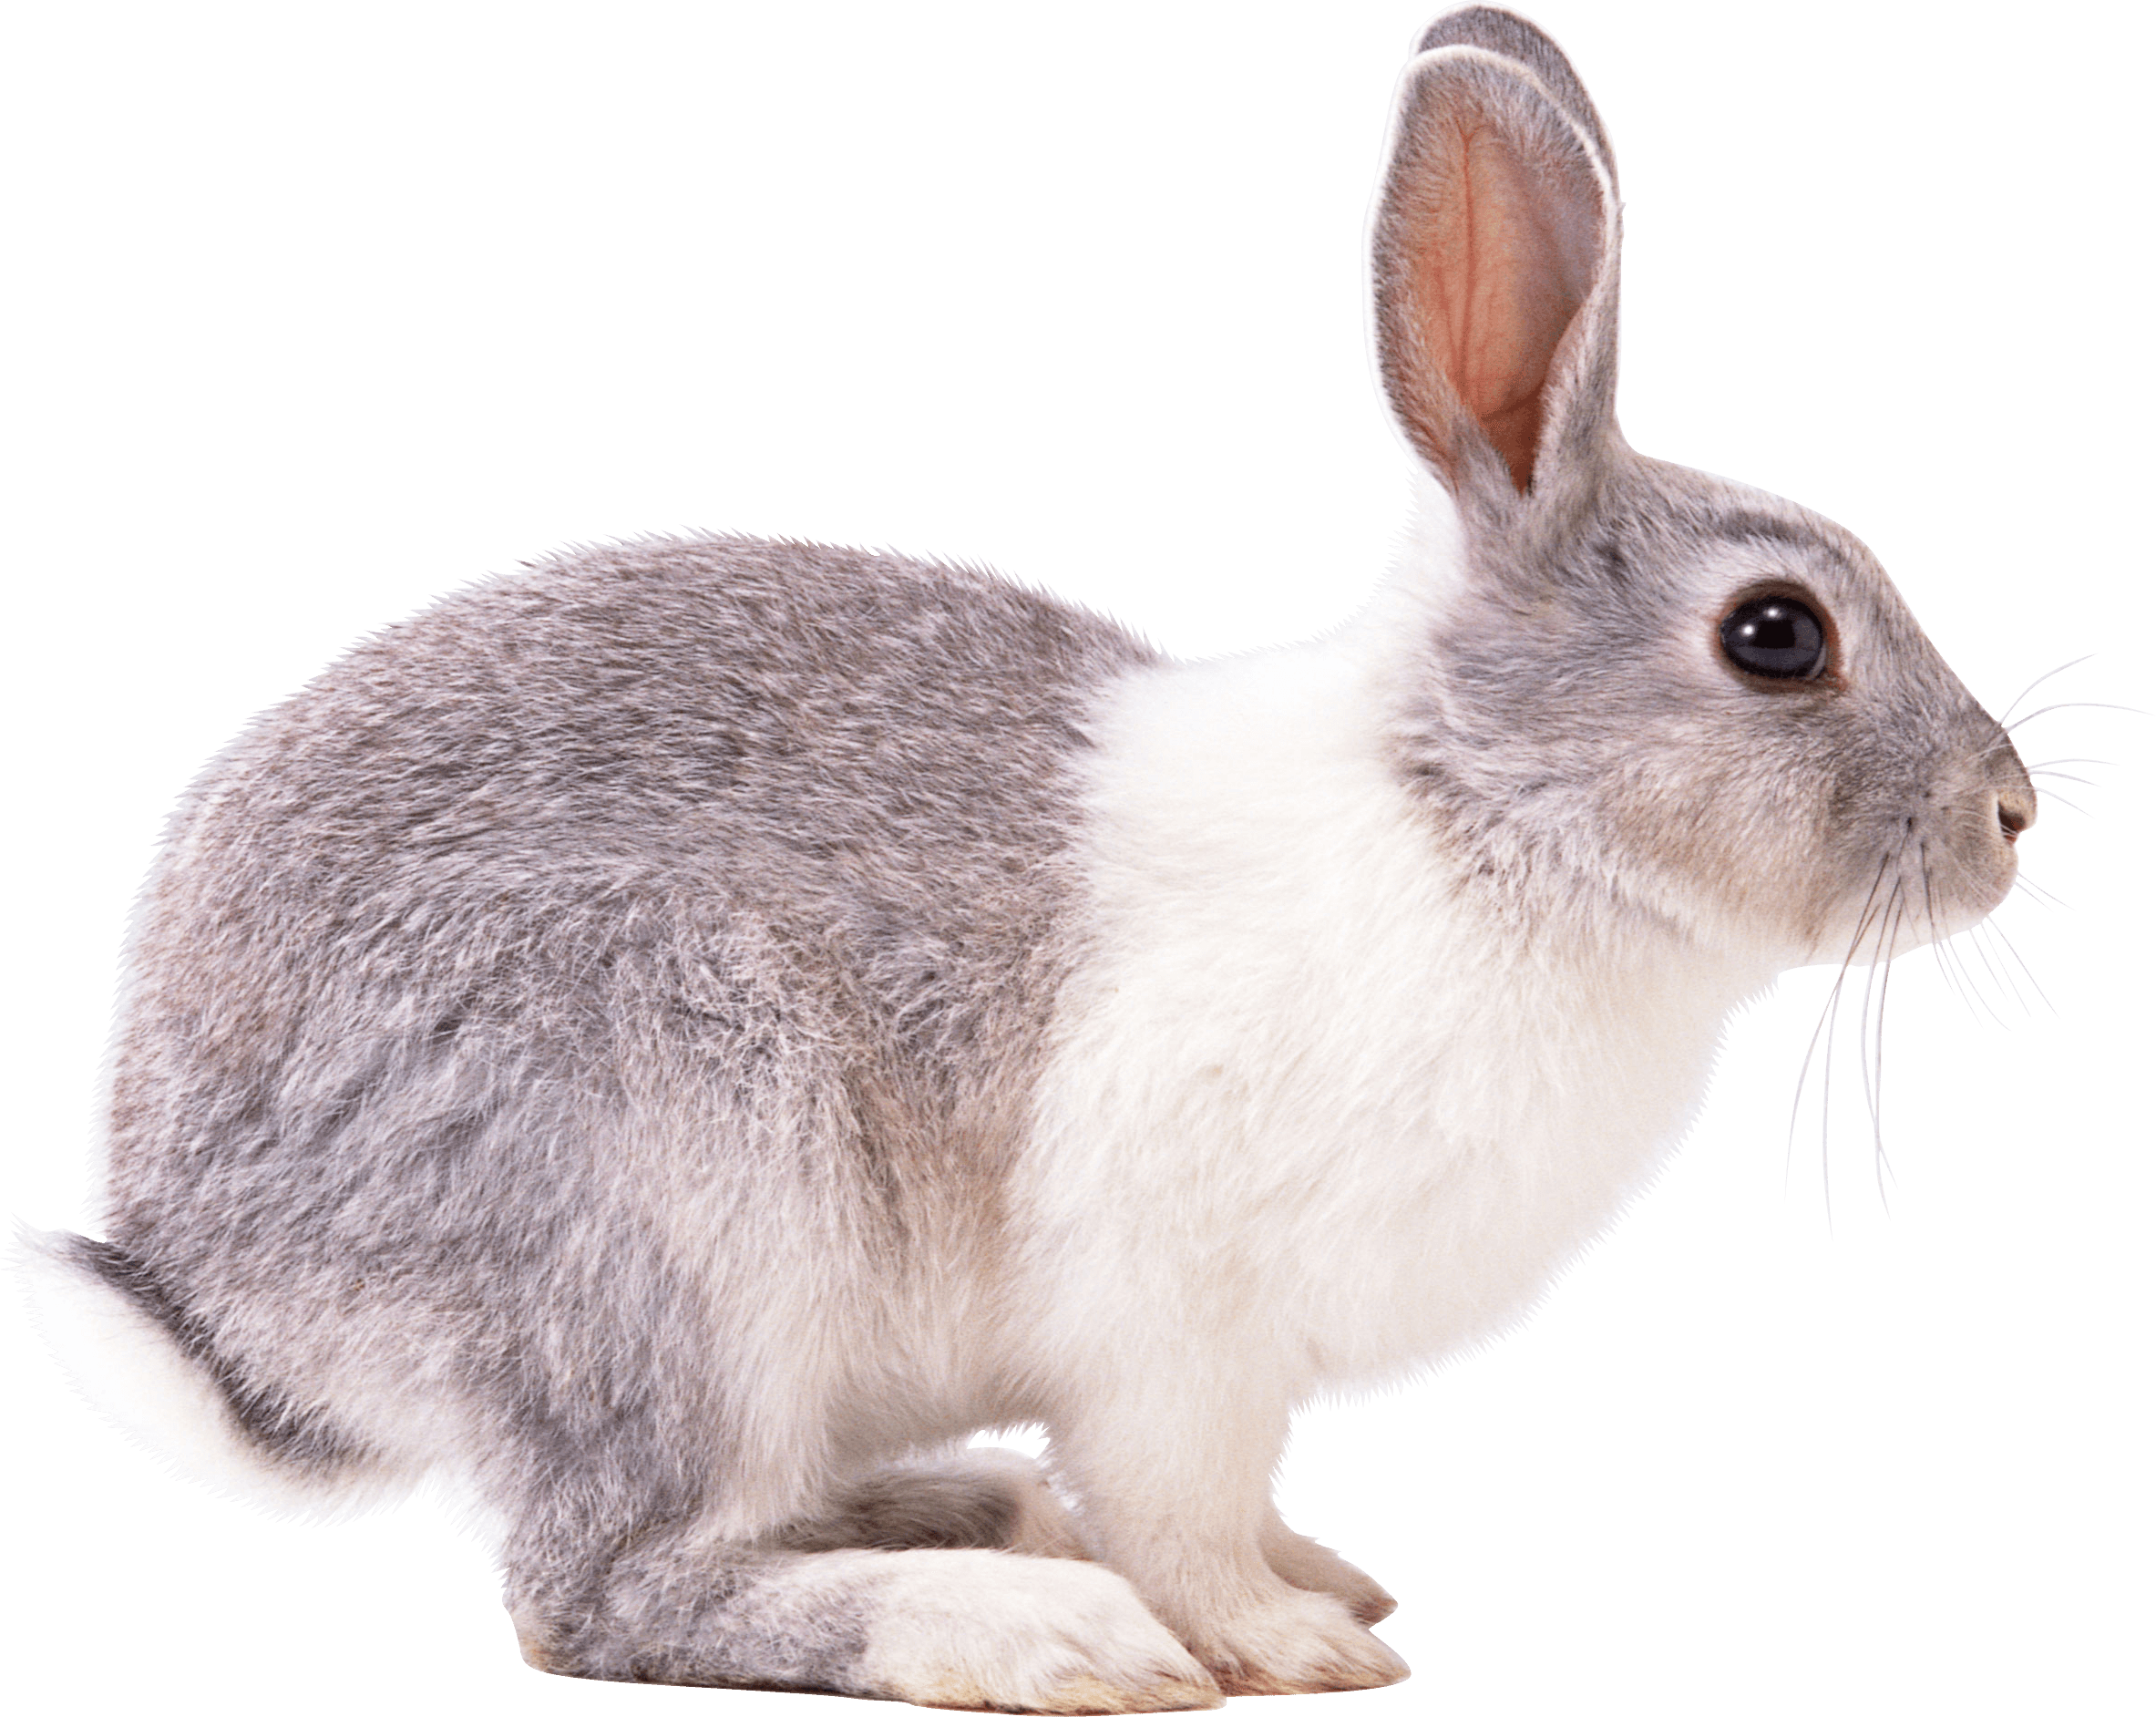 White Gray Rabbit Sideview Png Image Rabbit Png Rabbit Pictures Rabbit